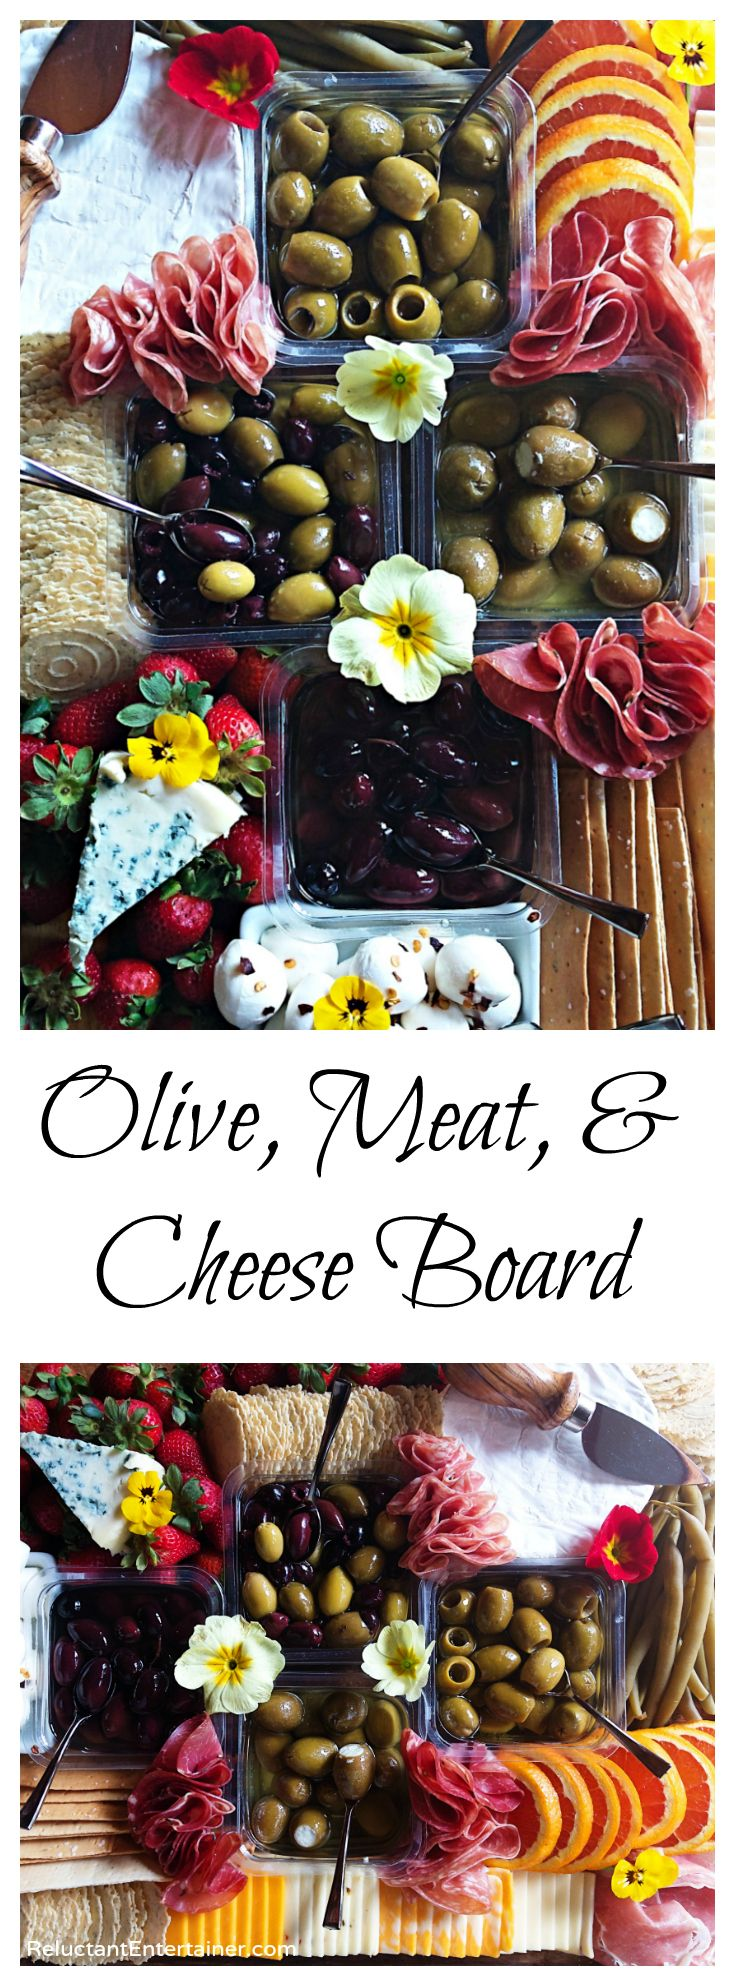 Olive, Meat, Cheese Board Recipe with DeLallo